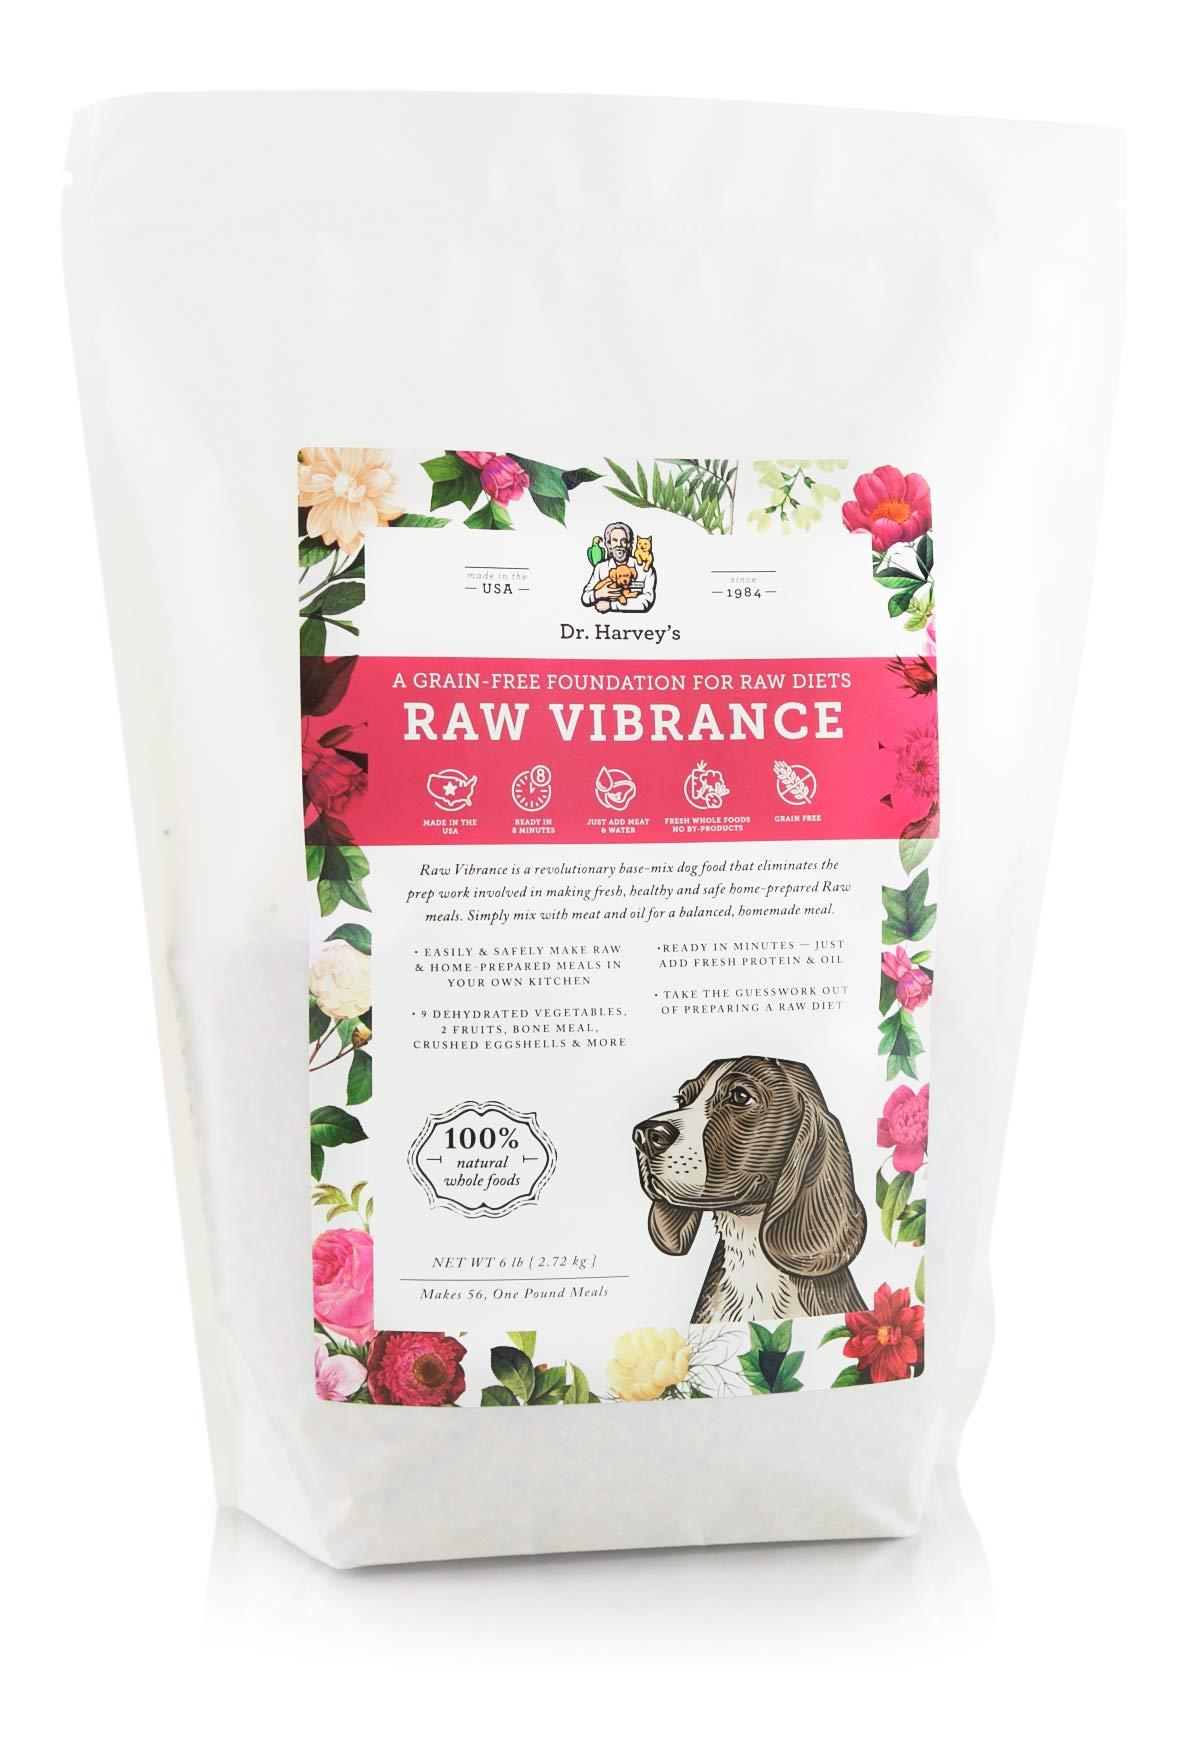 Dr. Harvey's Raw Vibrance Grain Free Dehydrated Foundation for Raw Diet Dog Food (6 Pounds)